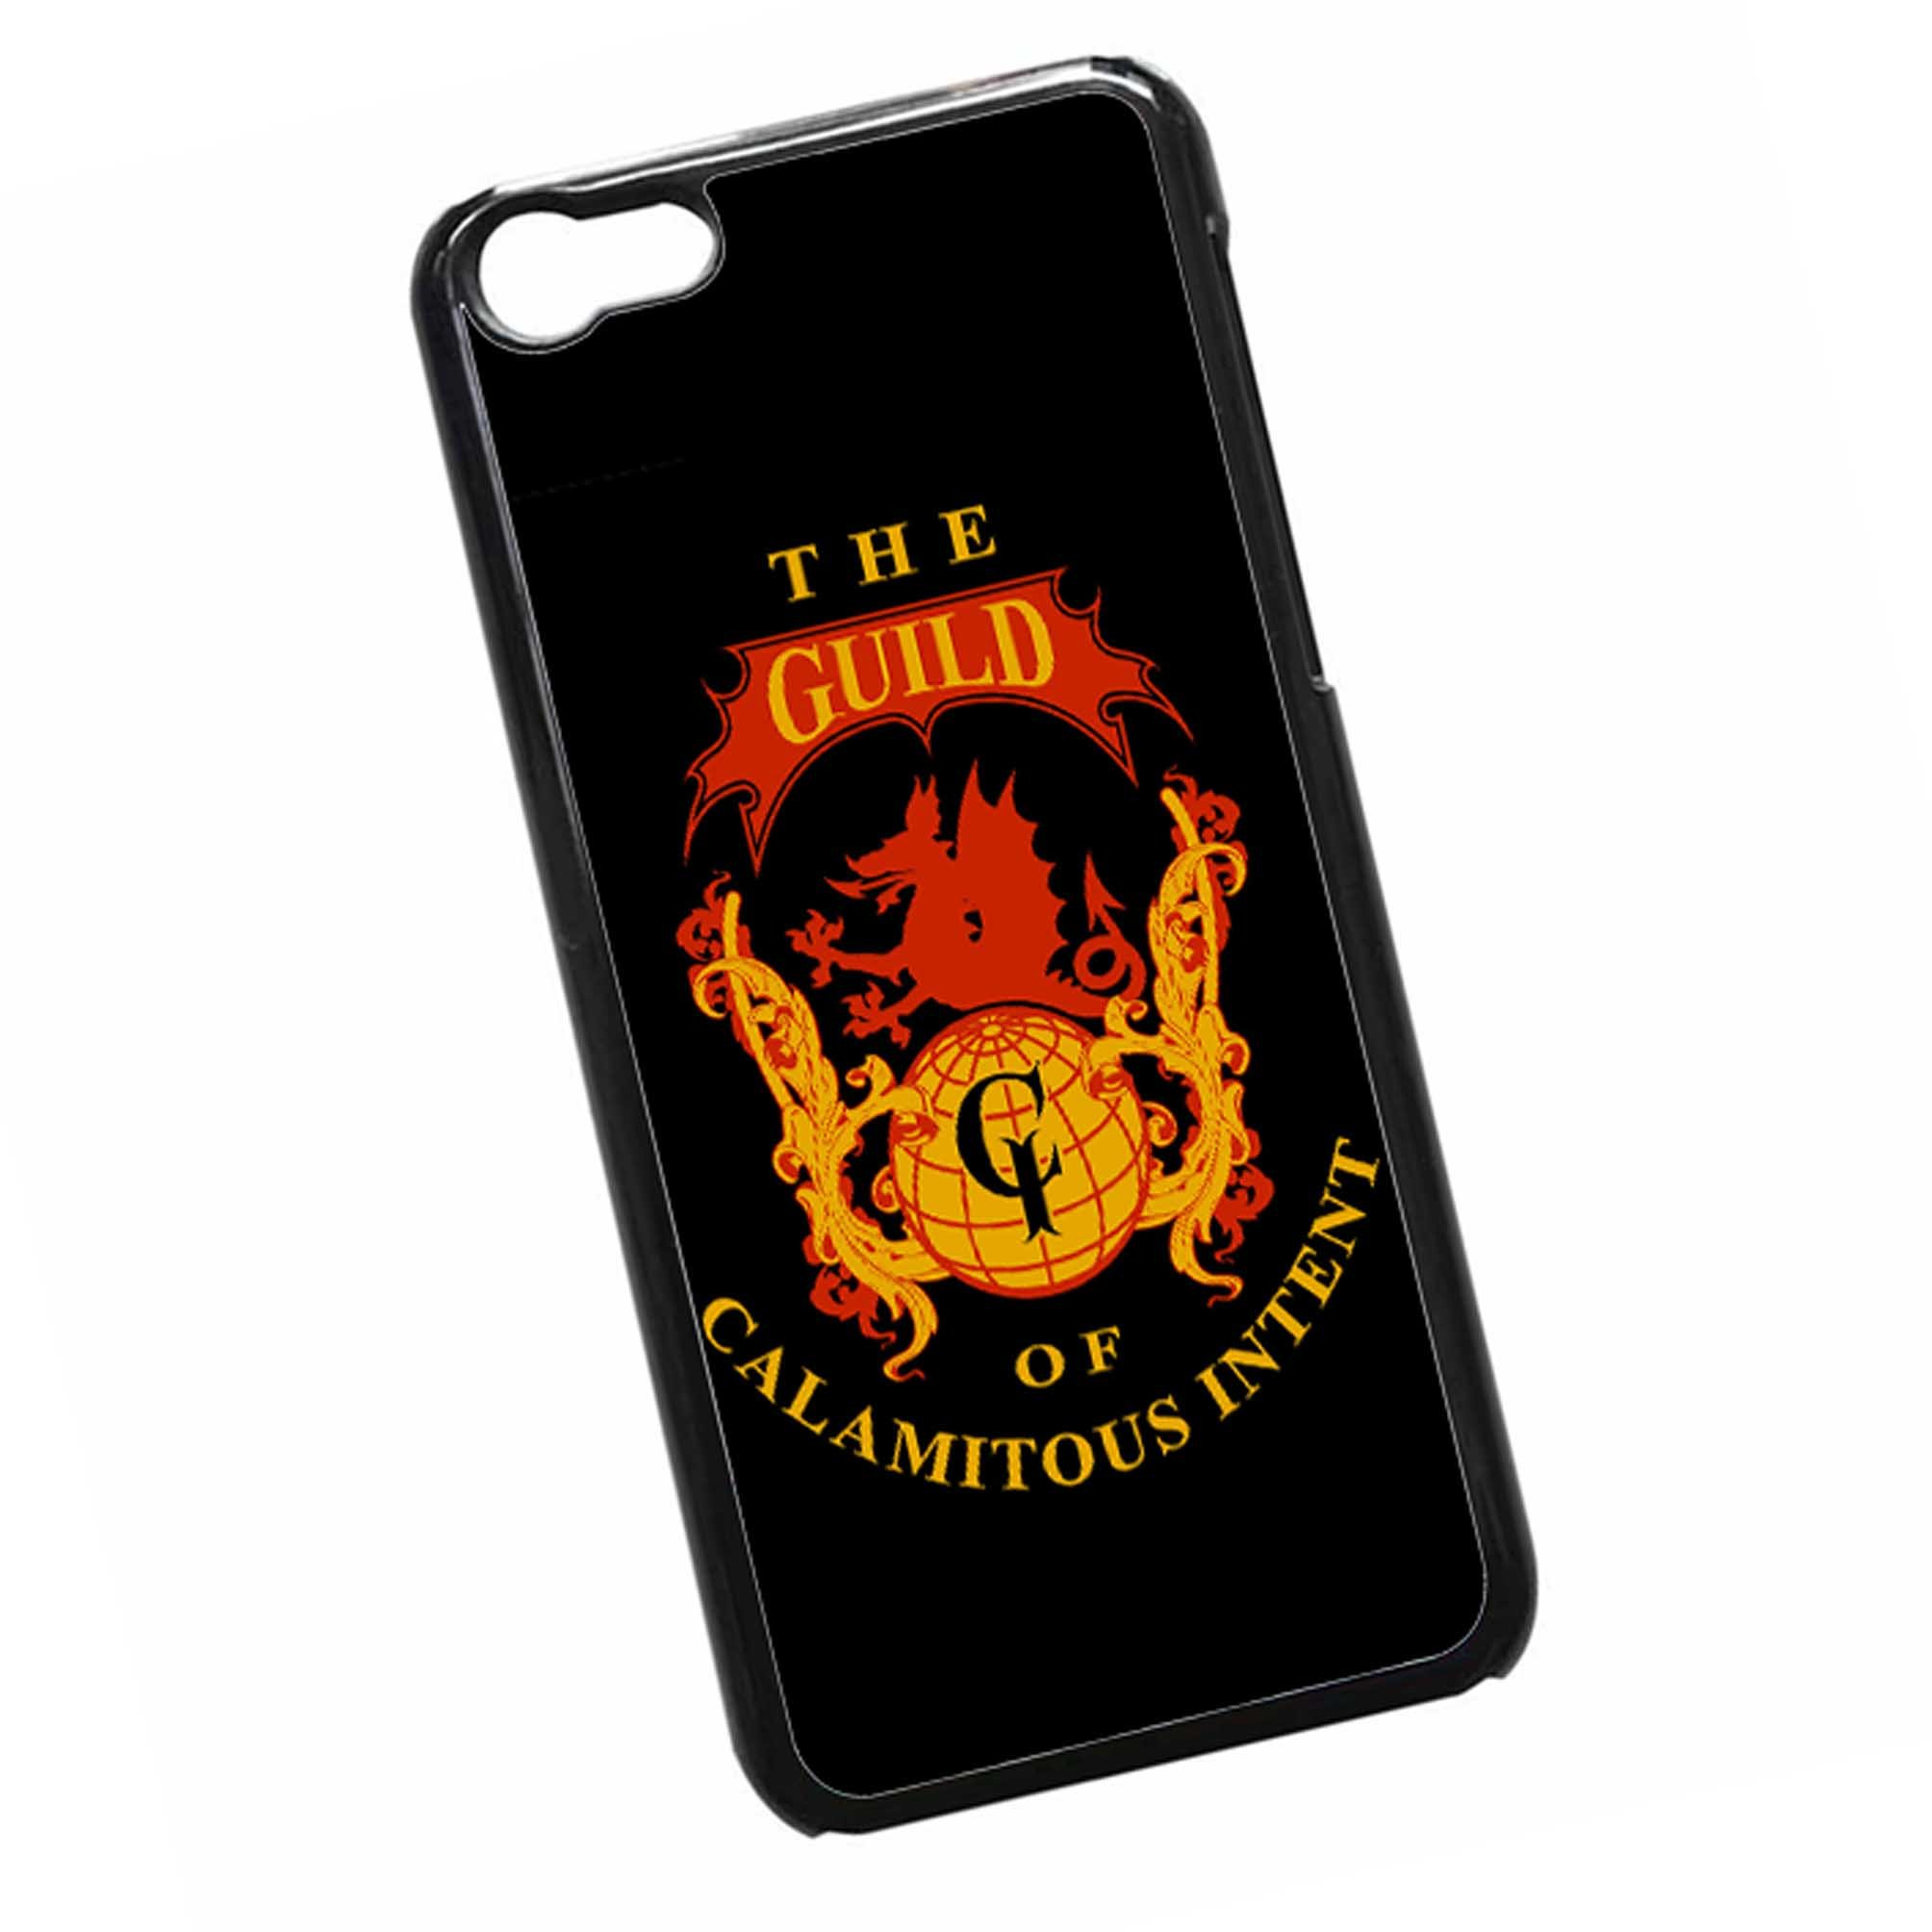 The guild of calamitous intent For iPhone 5C Case Cover